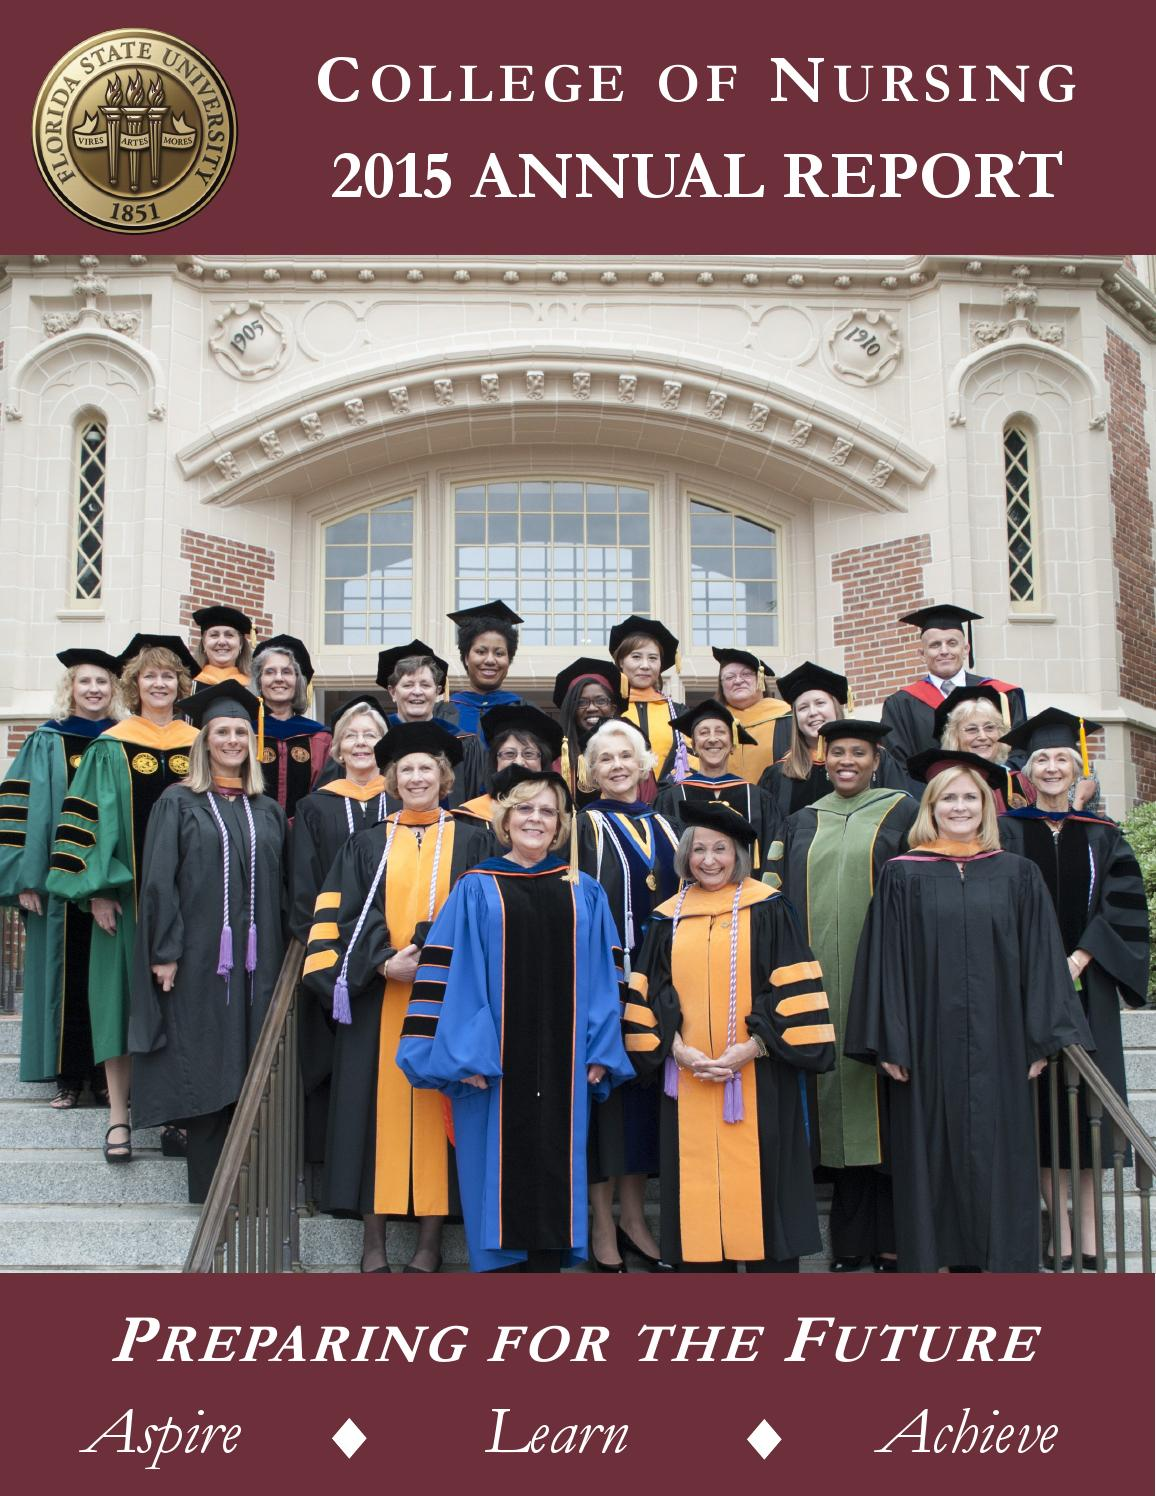 2015 Annual Report Digital Version By Marilyn Mcghee Issuu